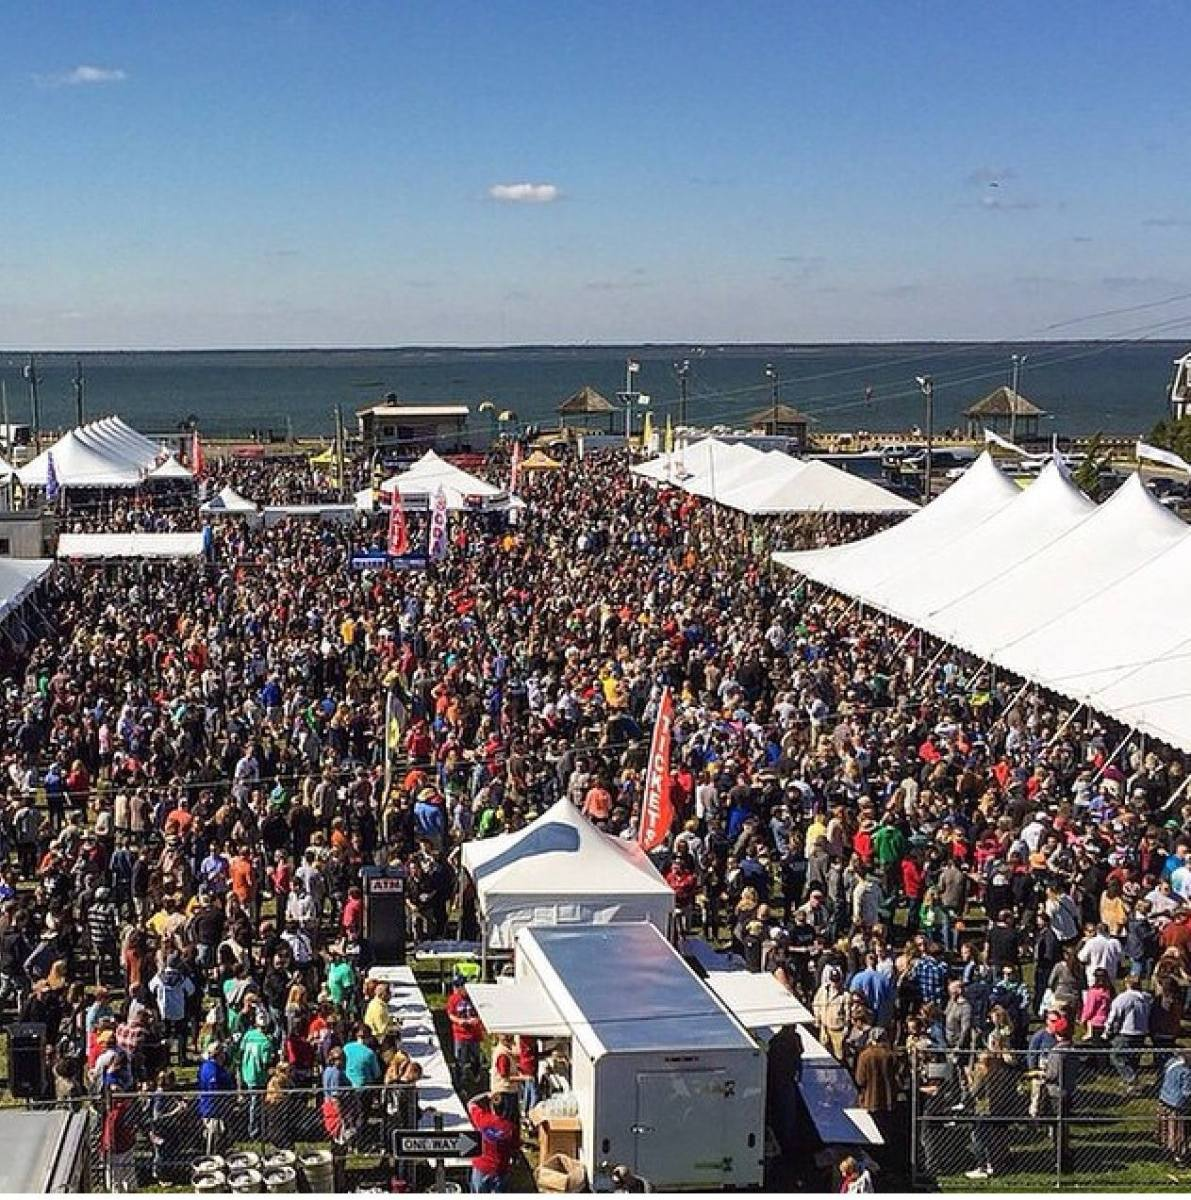 Lbi Nj: Top 10 Fall Festivals At The Jersey Shore